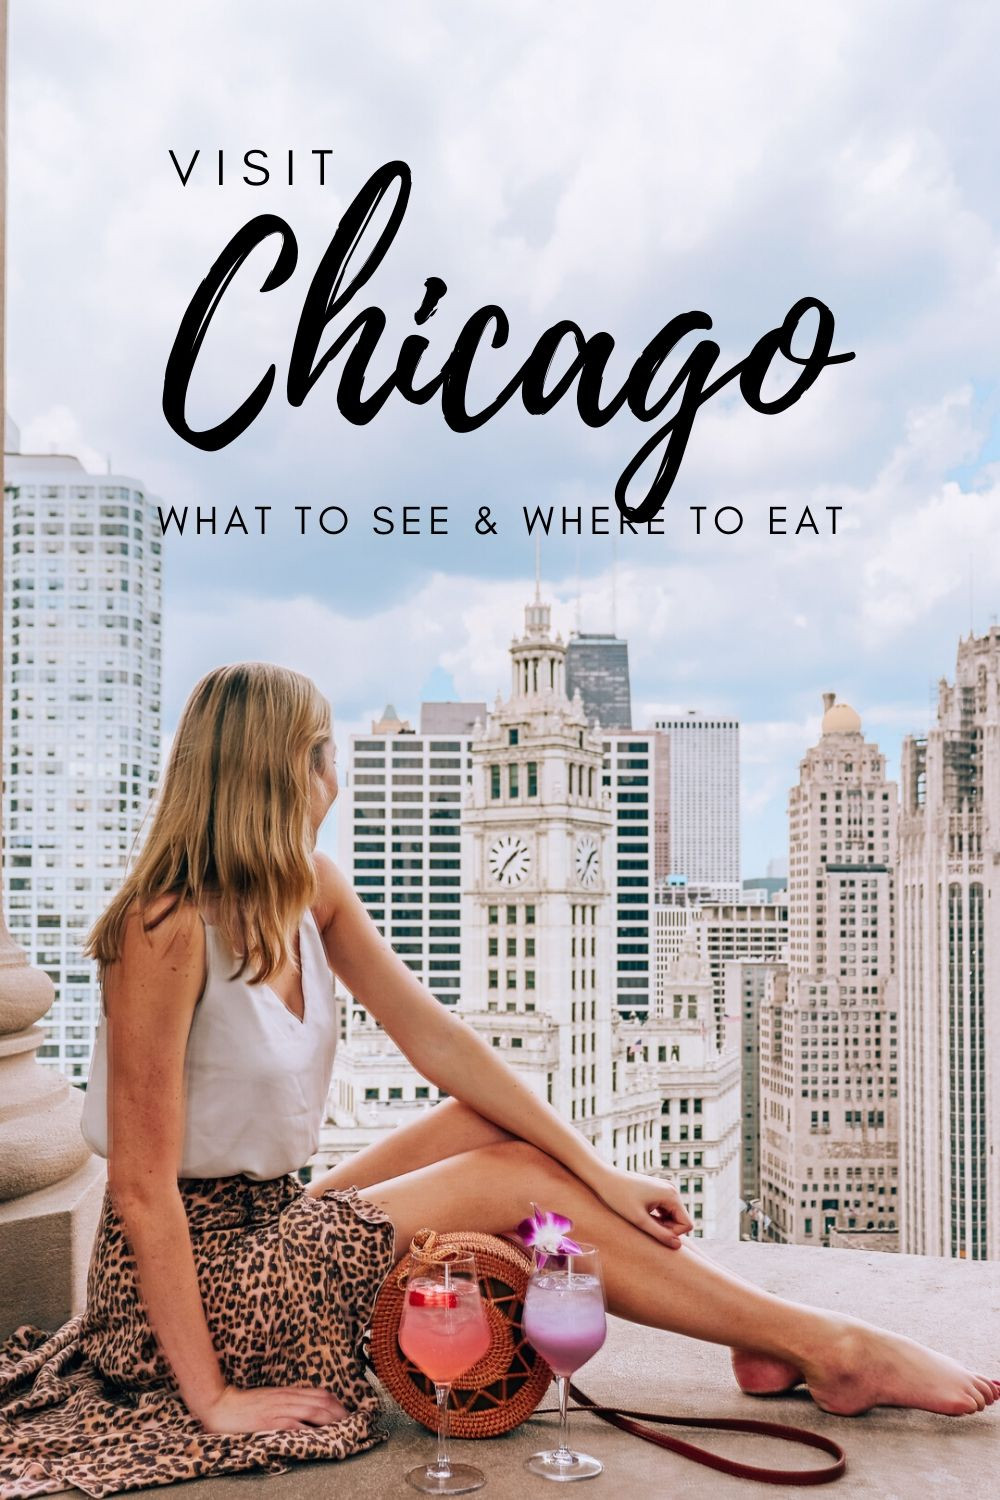 Visit Chicago: What to see and where to eat!